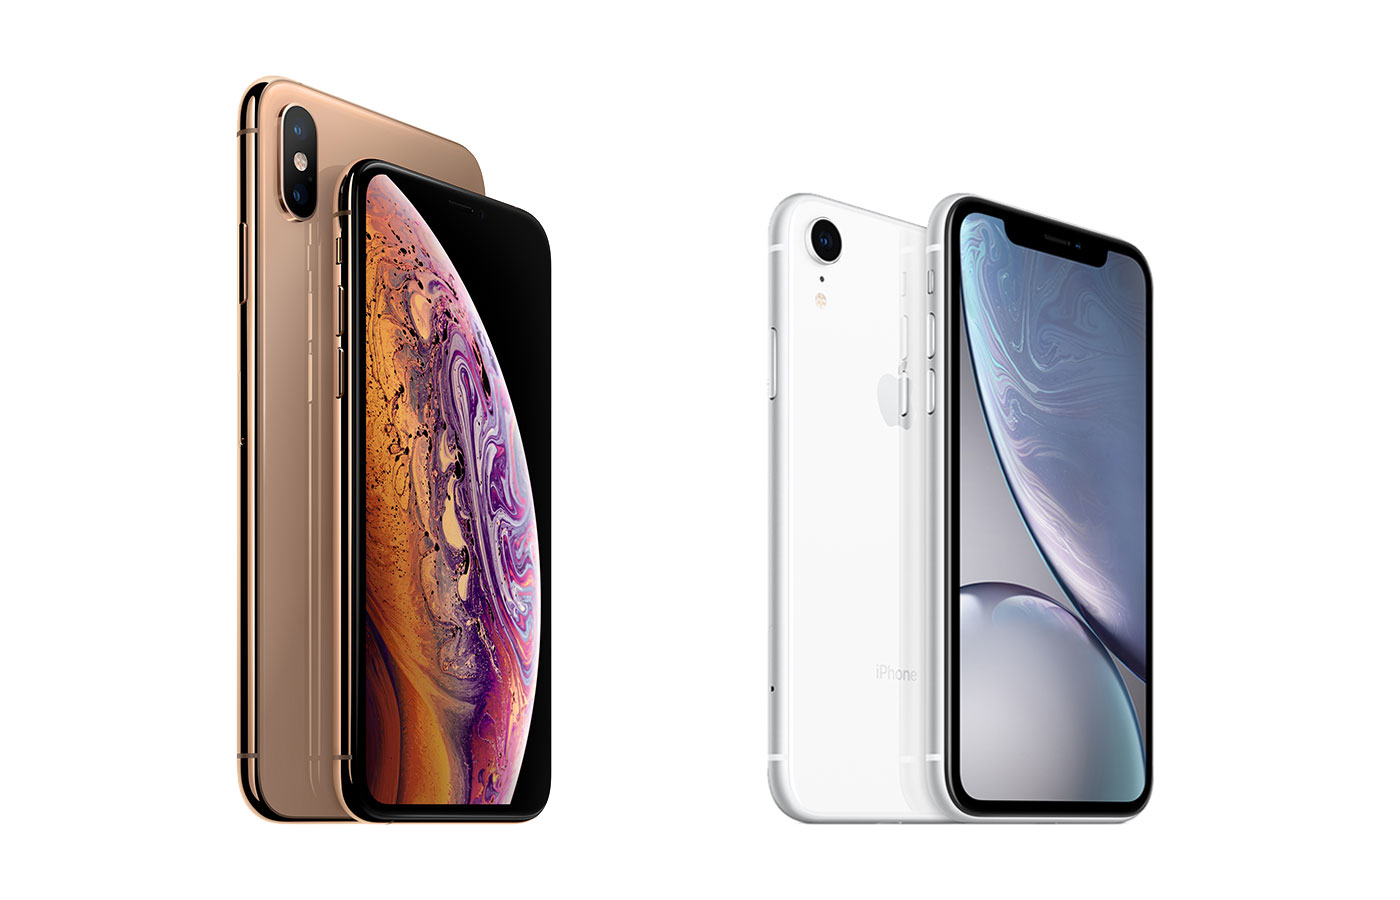 3 Nova Telefona Iz Kompanije Apple Iphone Xs Xs Max I